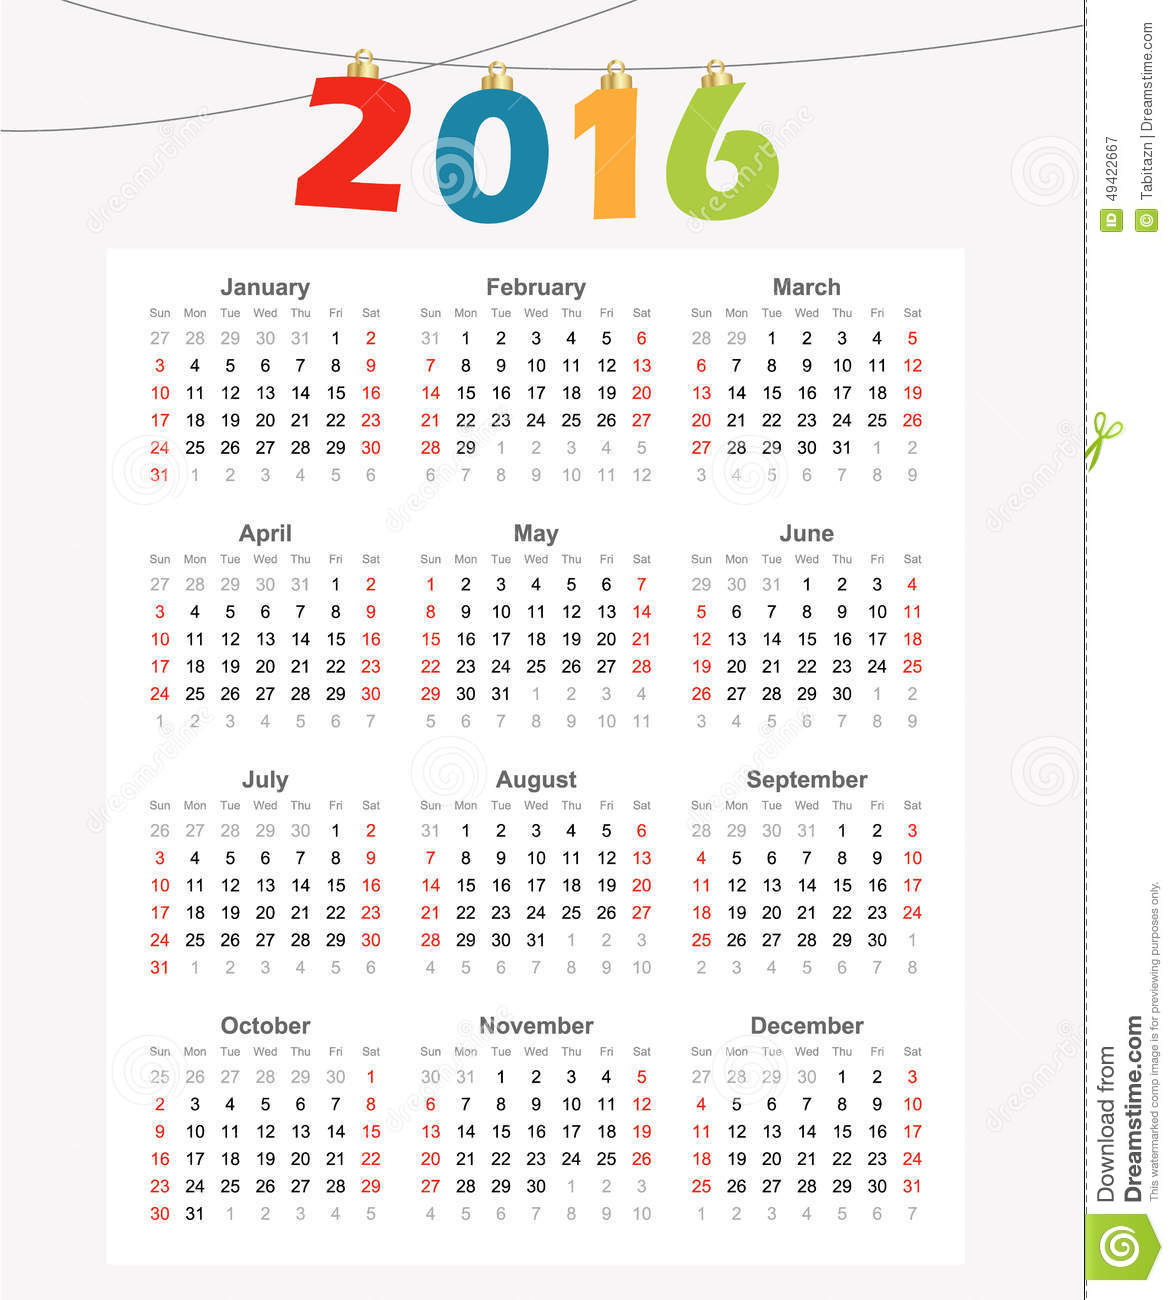 Illustration Calendar Design : Calendar simple modern design illustration stock